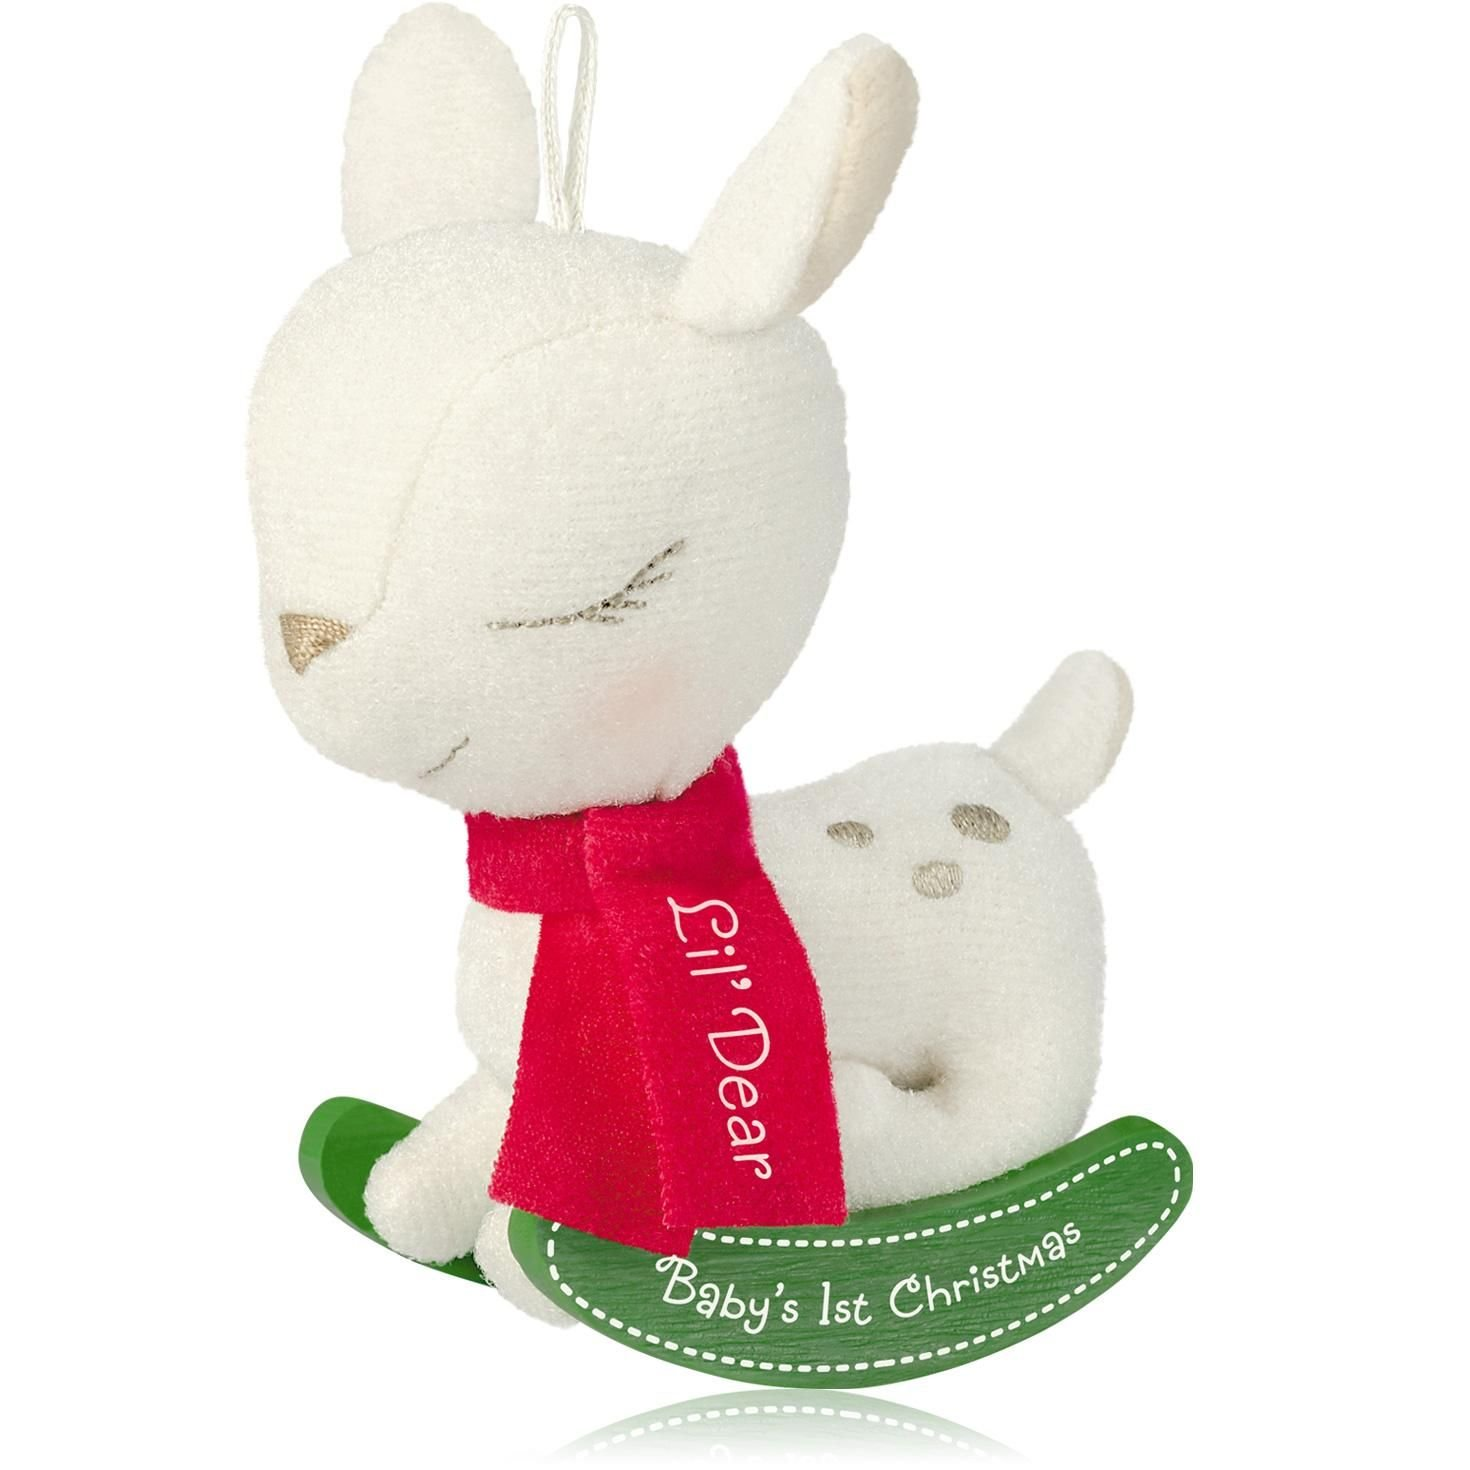 Baby's 1St Christmas Lil' Dear - 2014 Hallmark Keepsake Ornament